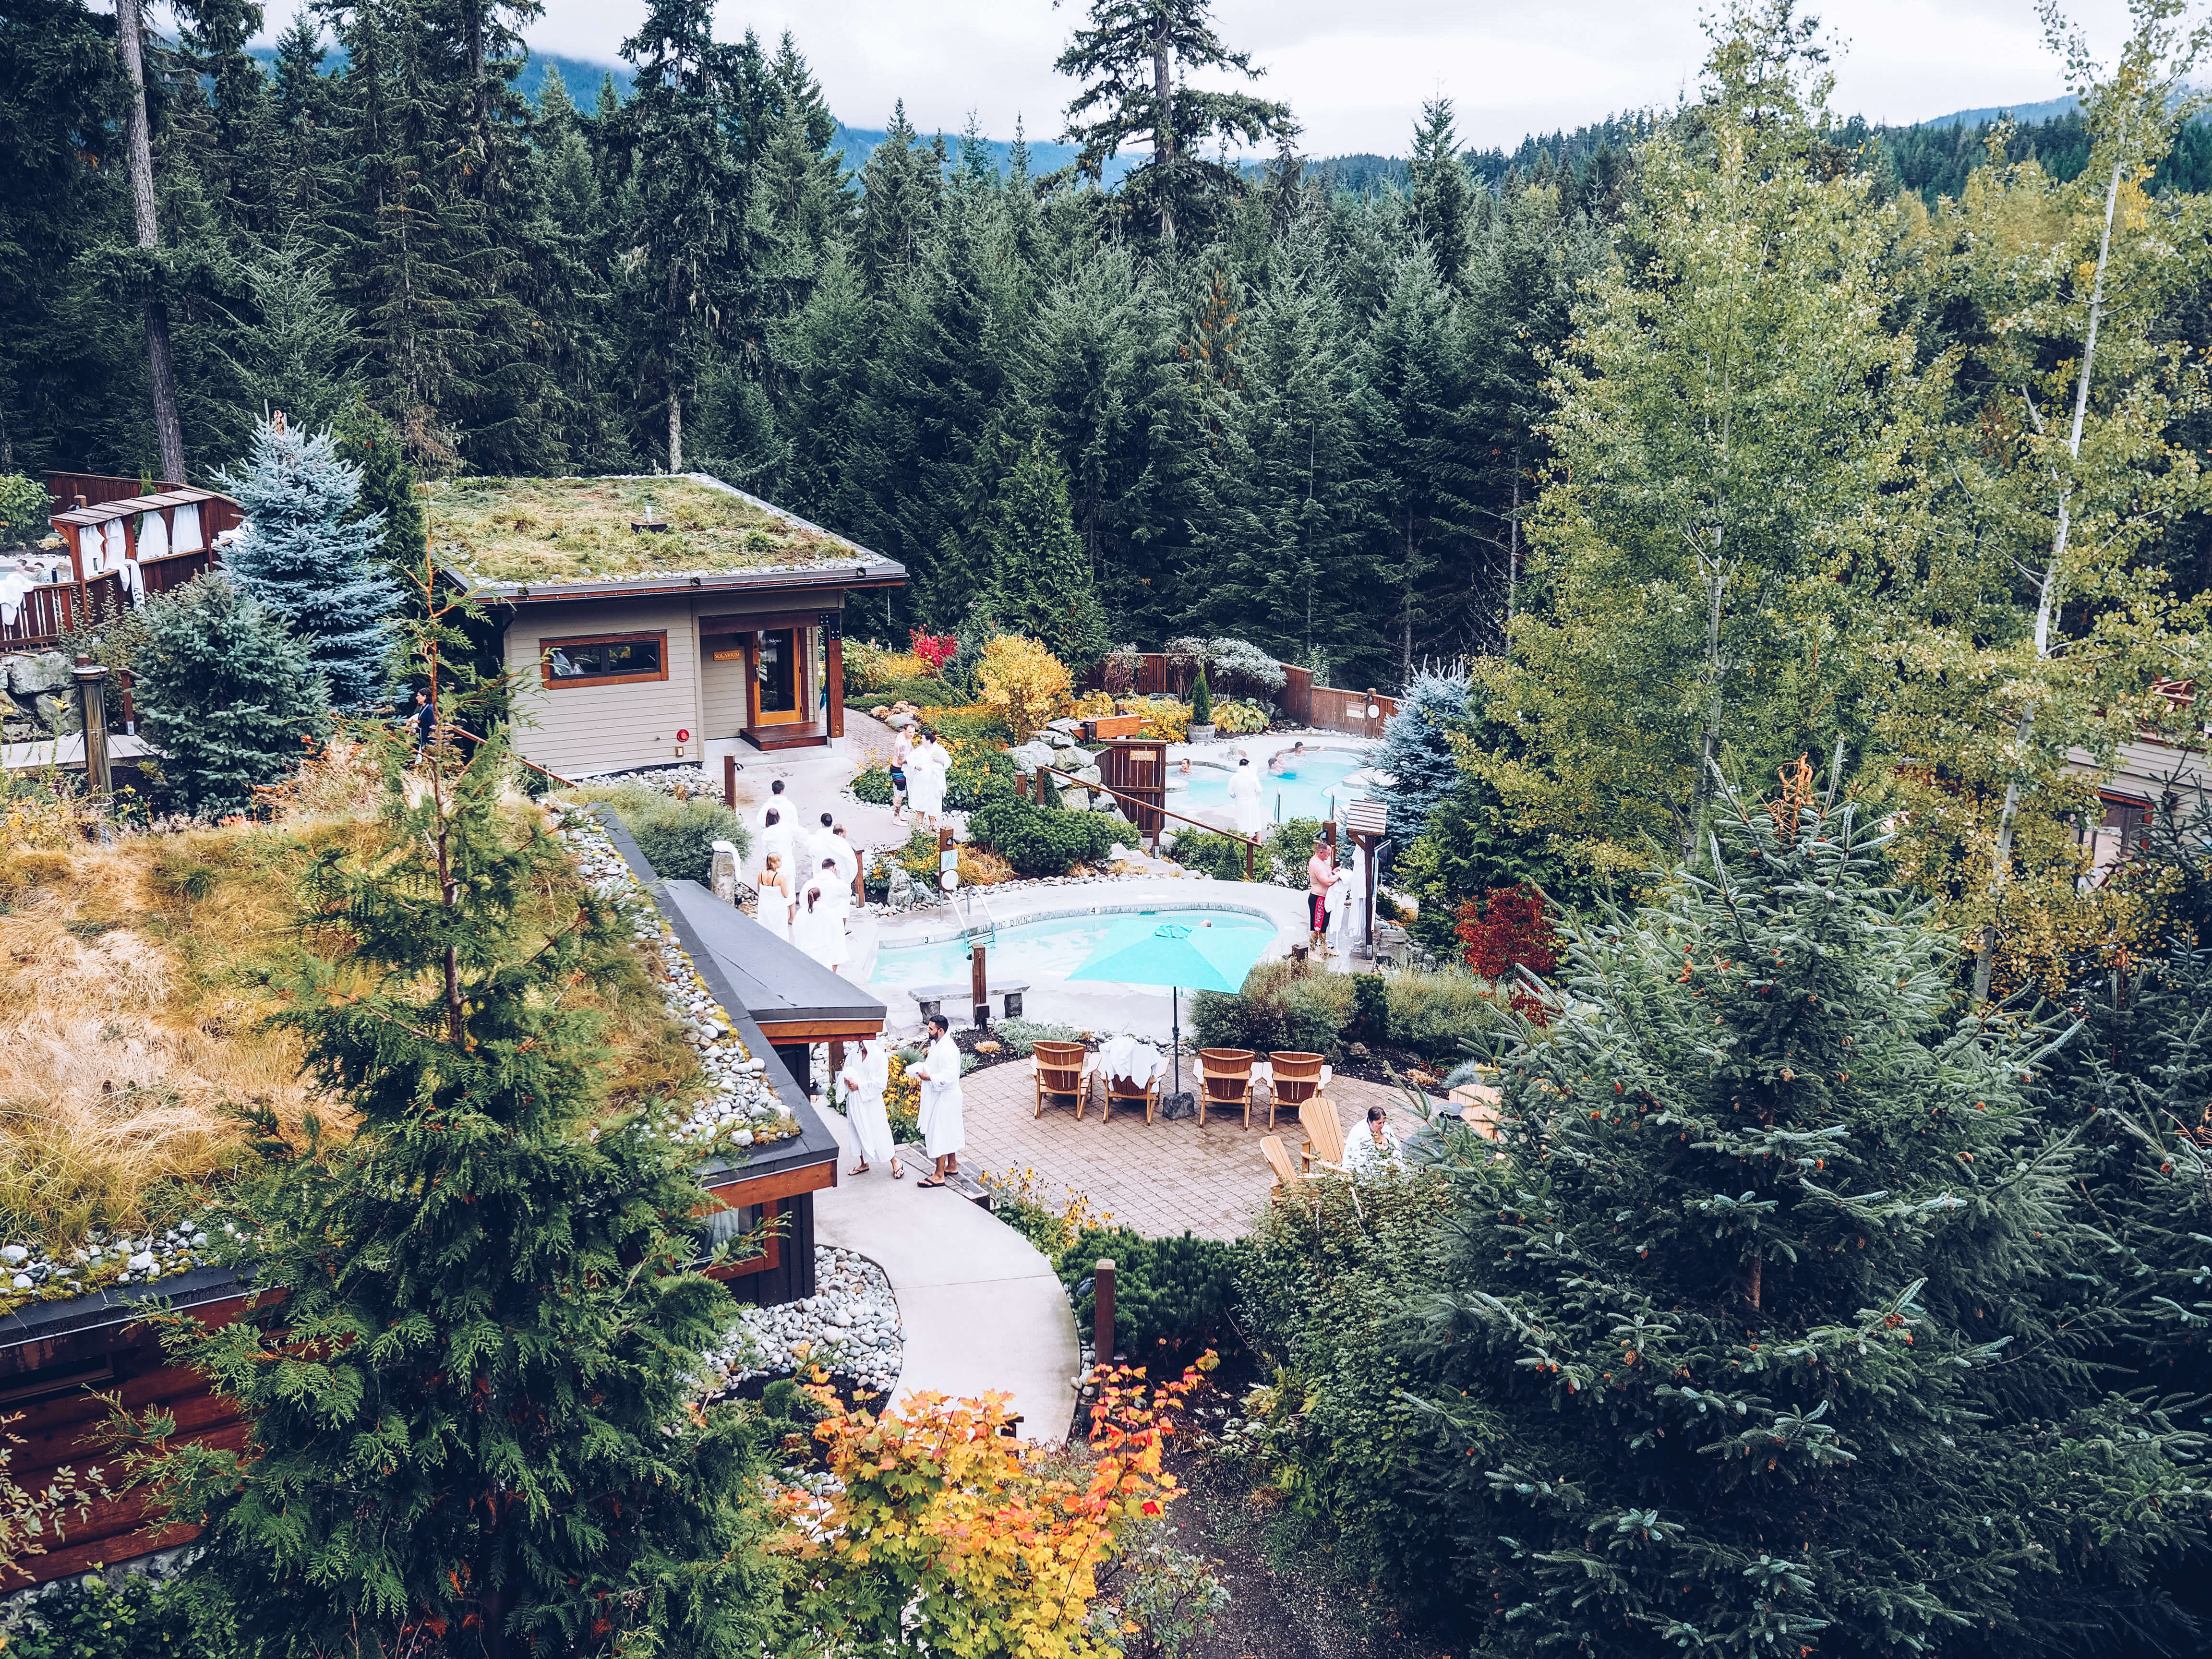 Luxury Weekend at The Chateau Whistler